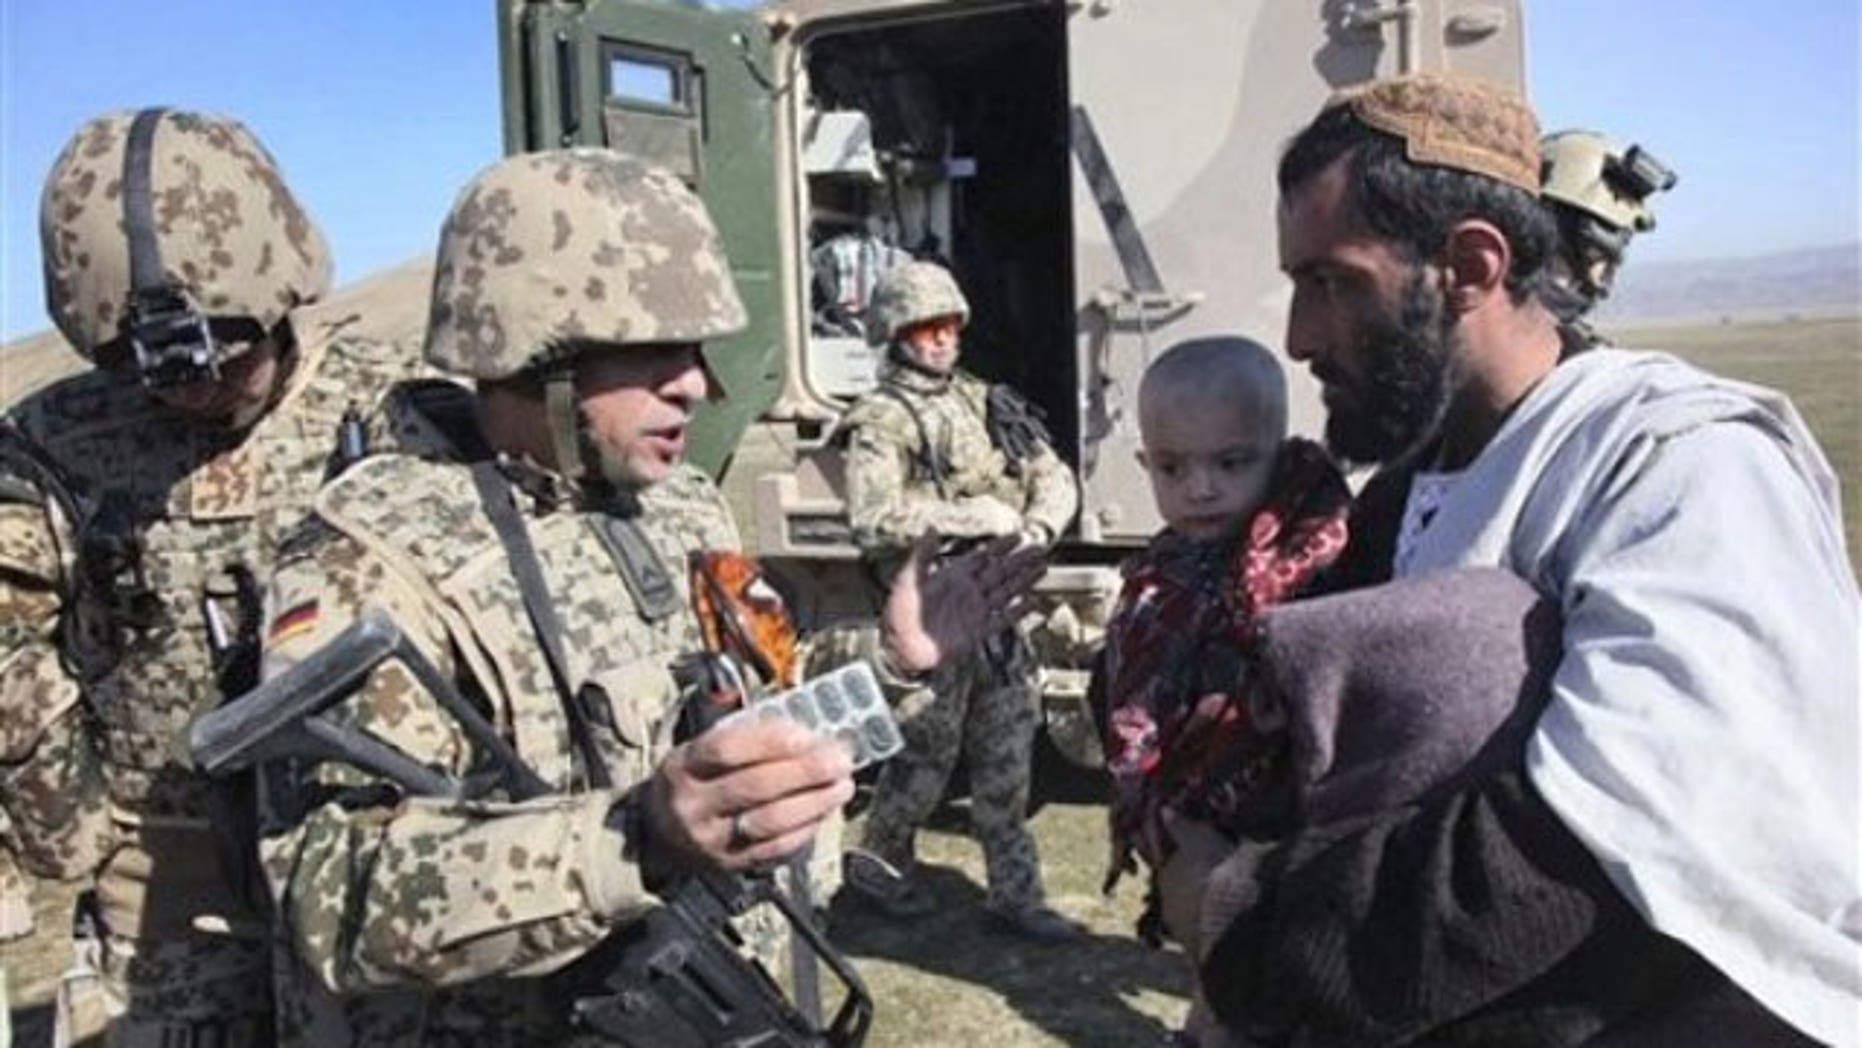 January 28, 2012: A German medic and soldier, center, part of a mobile medical team in the NATO- led International Security Assistance Force (ISAF) explains the usage of the medicine to father of an Afghan child patient during a joining ceremony of Taliban militants with the Afghan government in Baghlan, north of Kabul, Afghanistan.